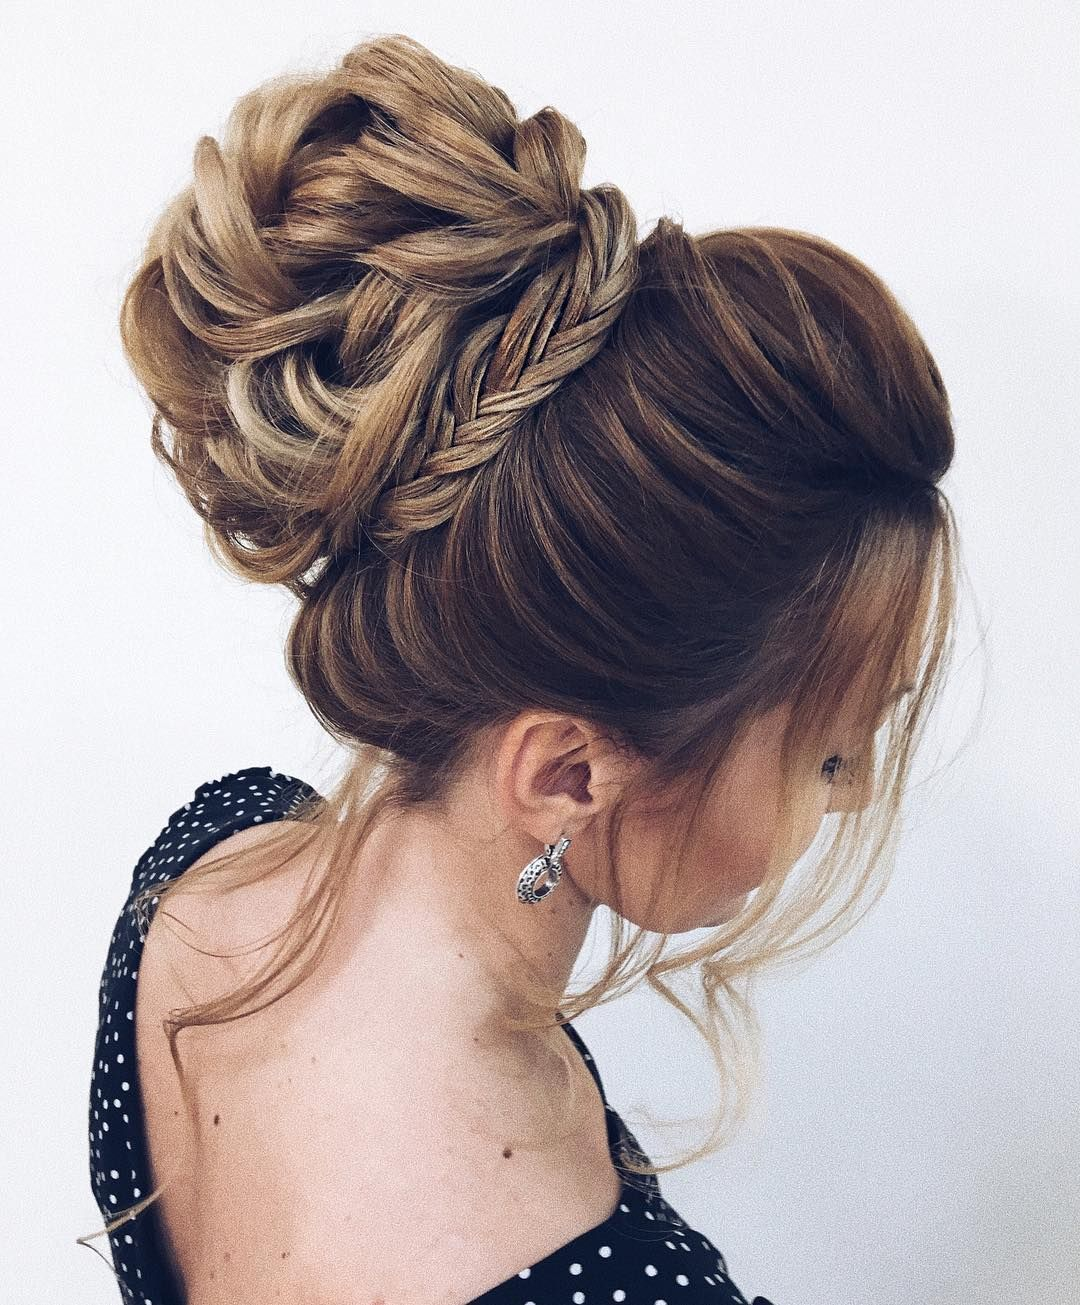 Unique Updo Hairstyle High Bun Hairstyle Prom Hairstyles Wedding Hairstyle Ideas Wedding Weddinghair Hair Styles Elegant Wedding Hair High Bun Hairstyles